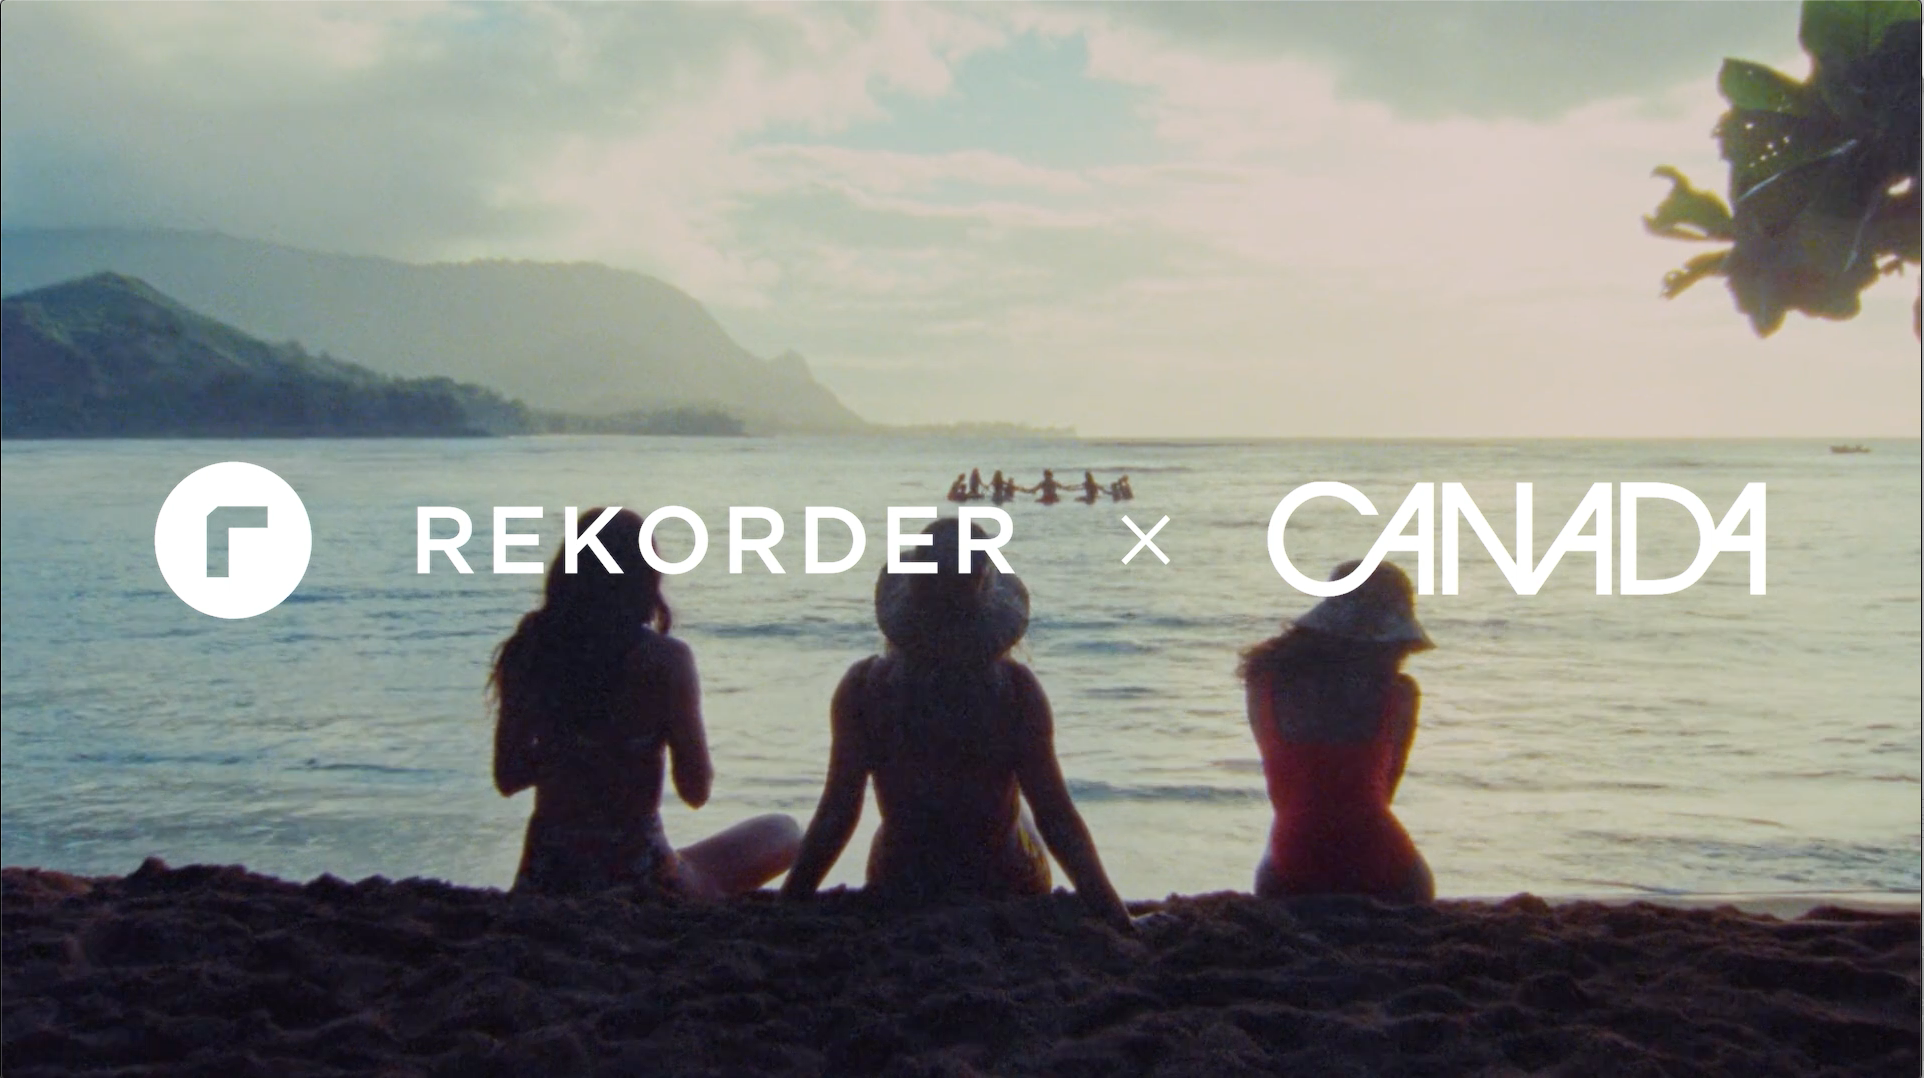 REKORDER Signs Production Company CANADA